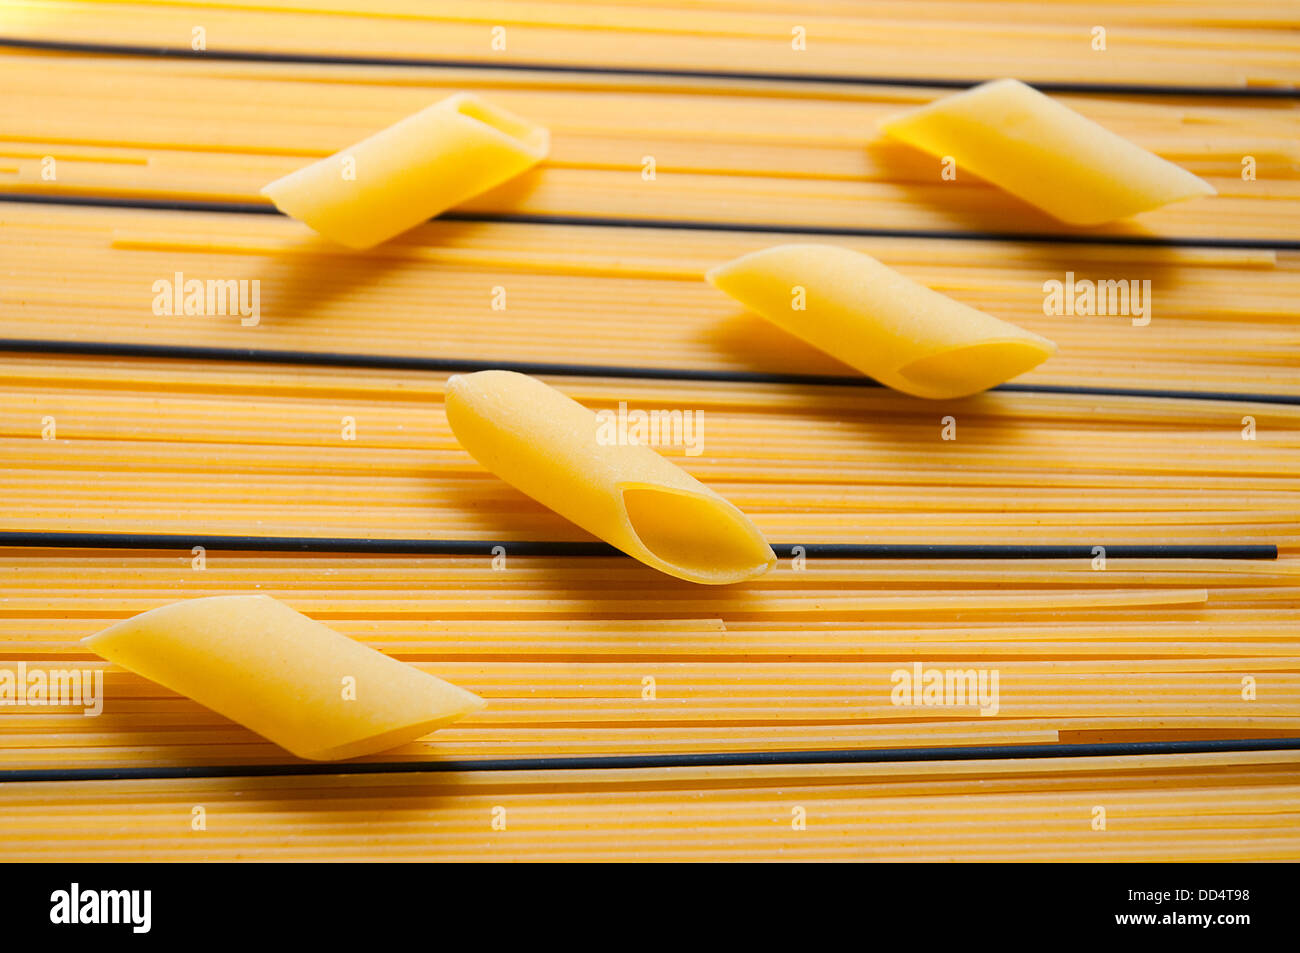 Pasta composition made of macaroni and spaghetti. - Stock Image